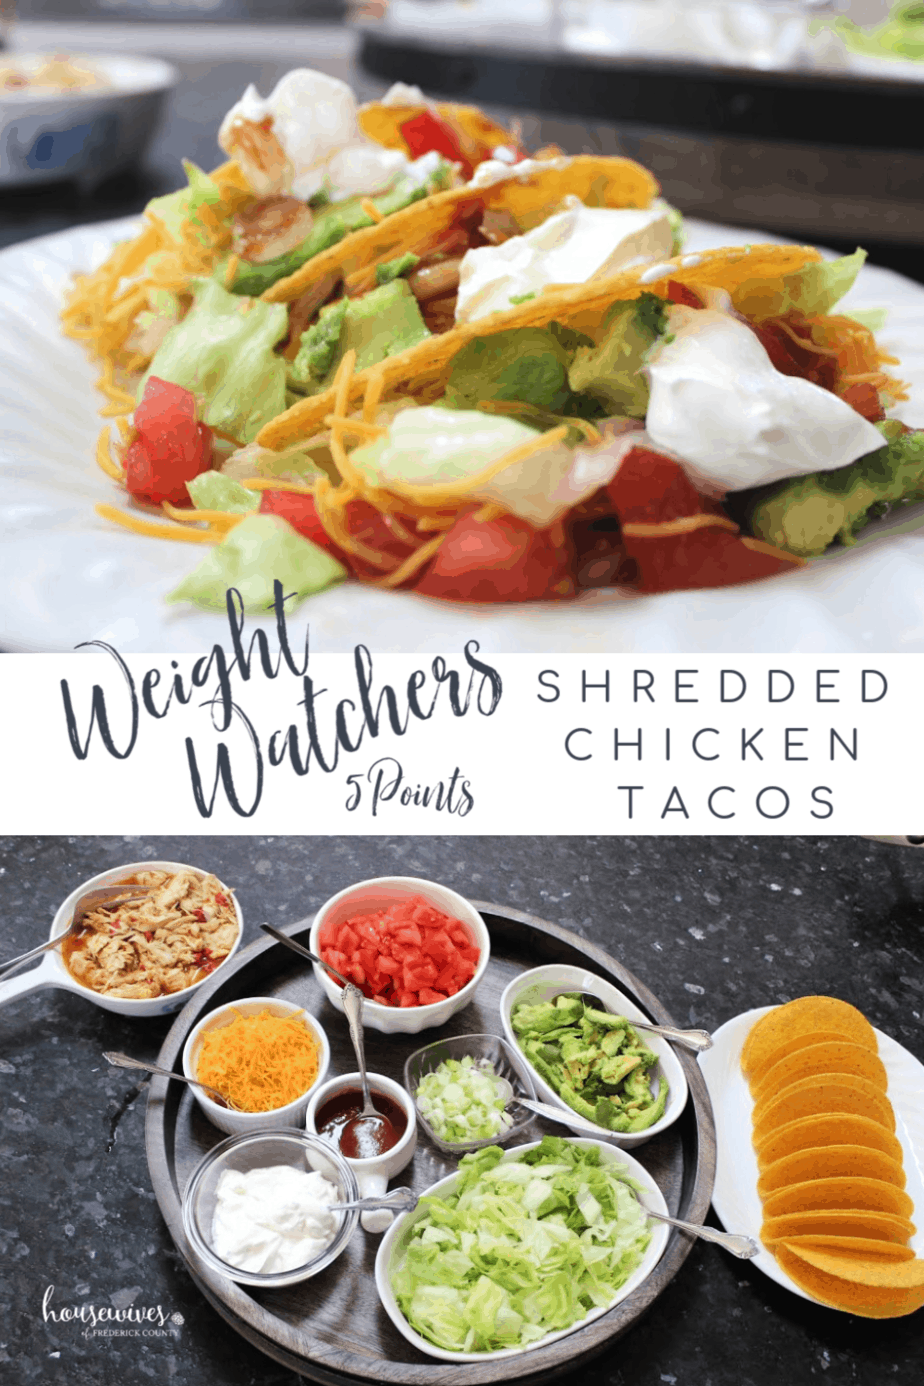 Weight Watchers Shredded Chicken Tacos: 5 SmartPoints